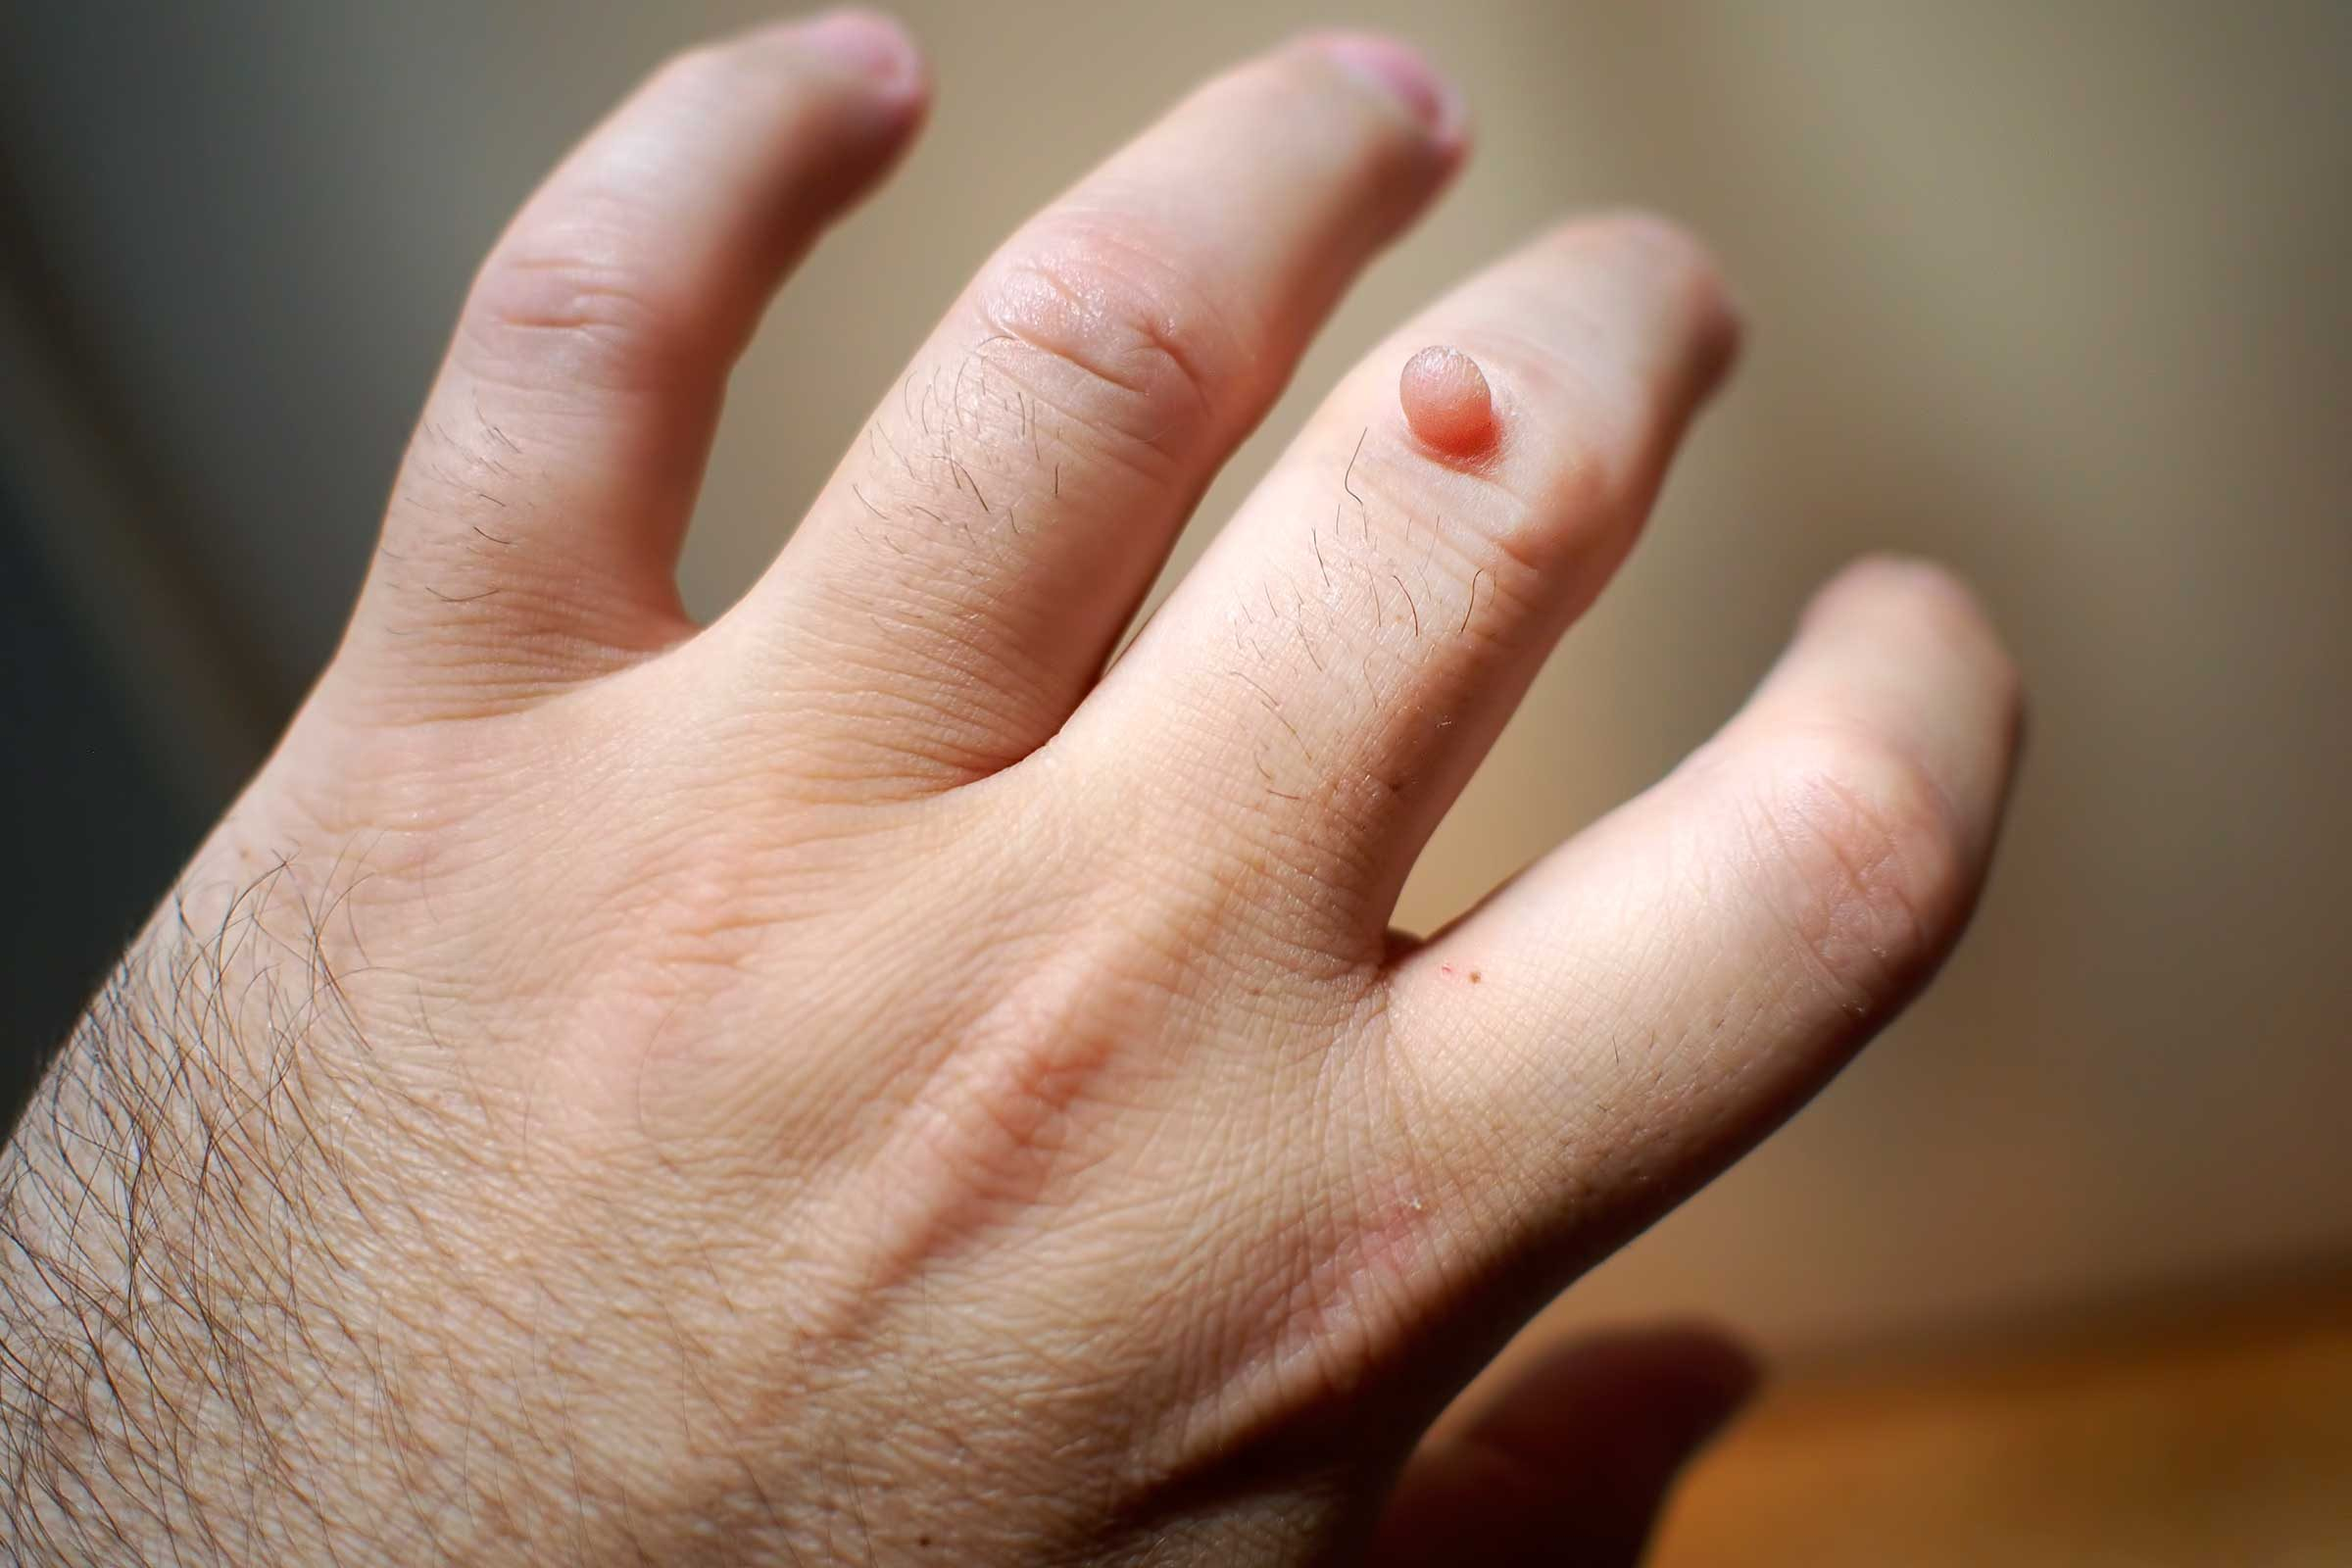 Warts on hands not hpv - Warts on hands not going away, Human papillomavirus pcr